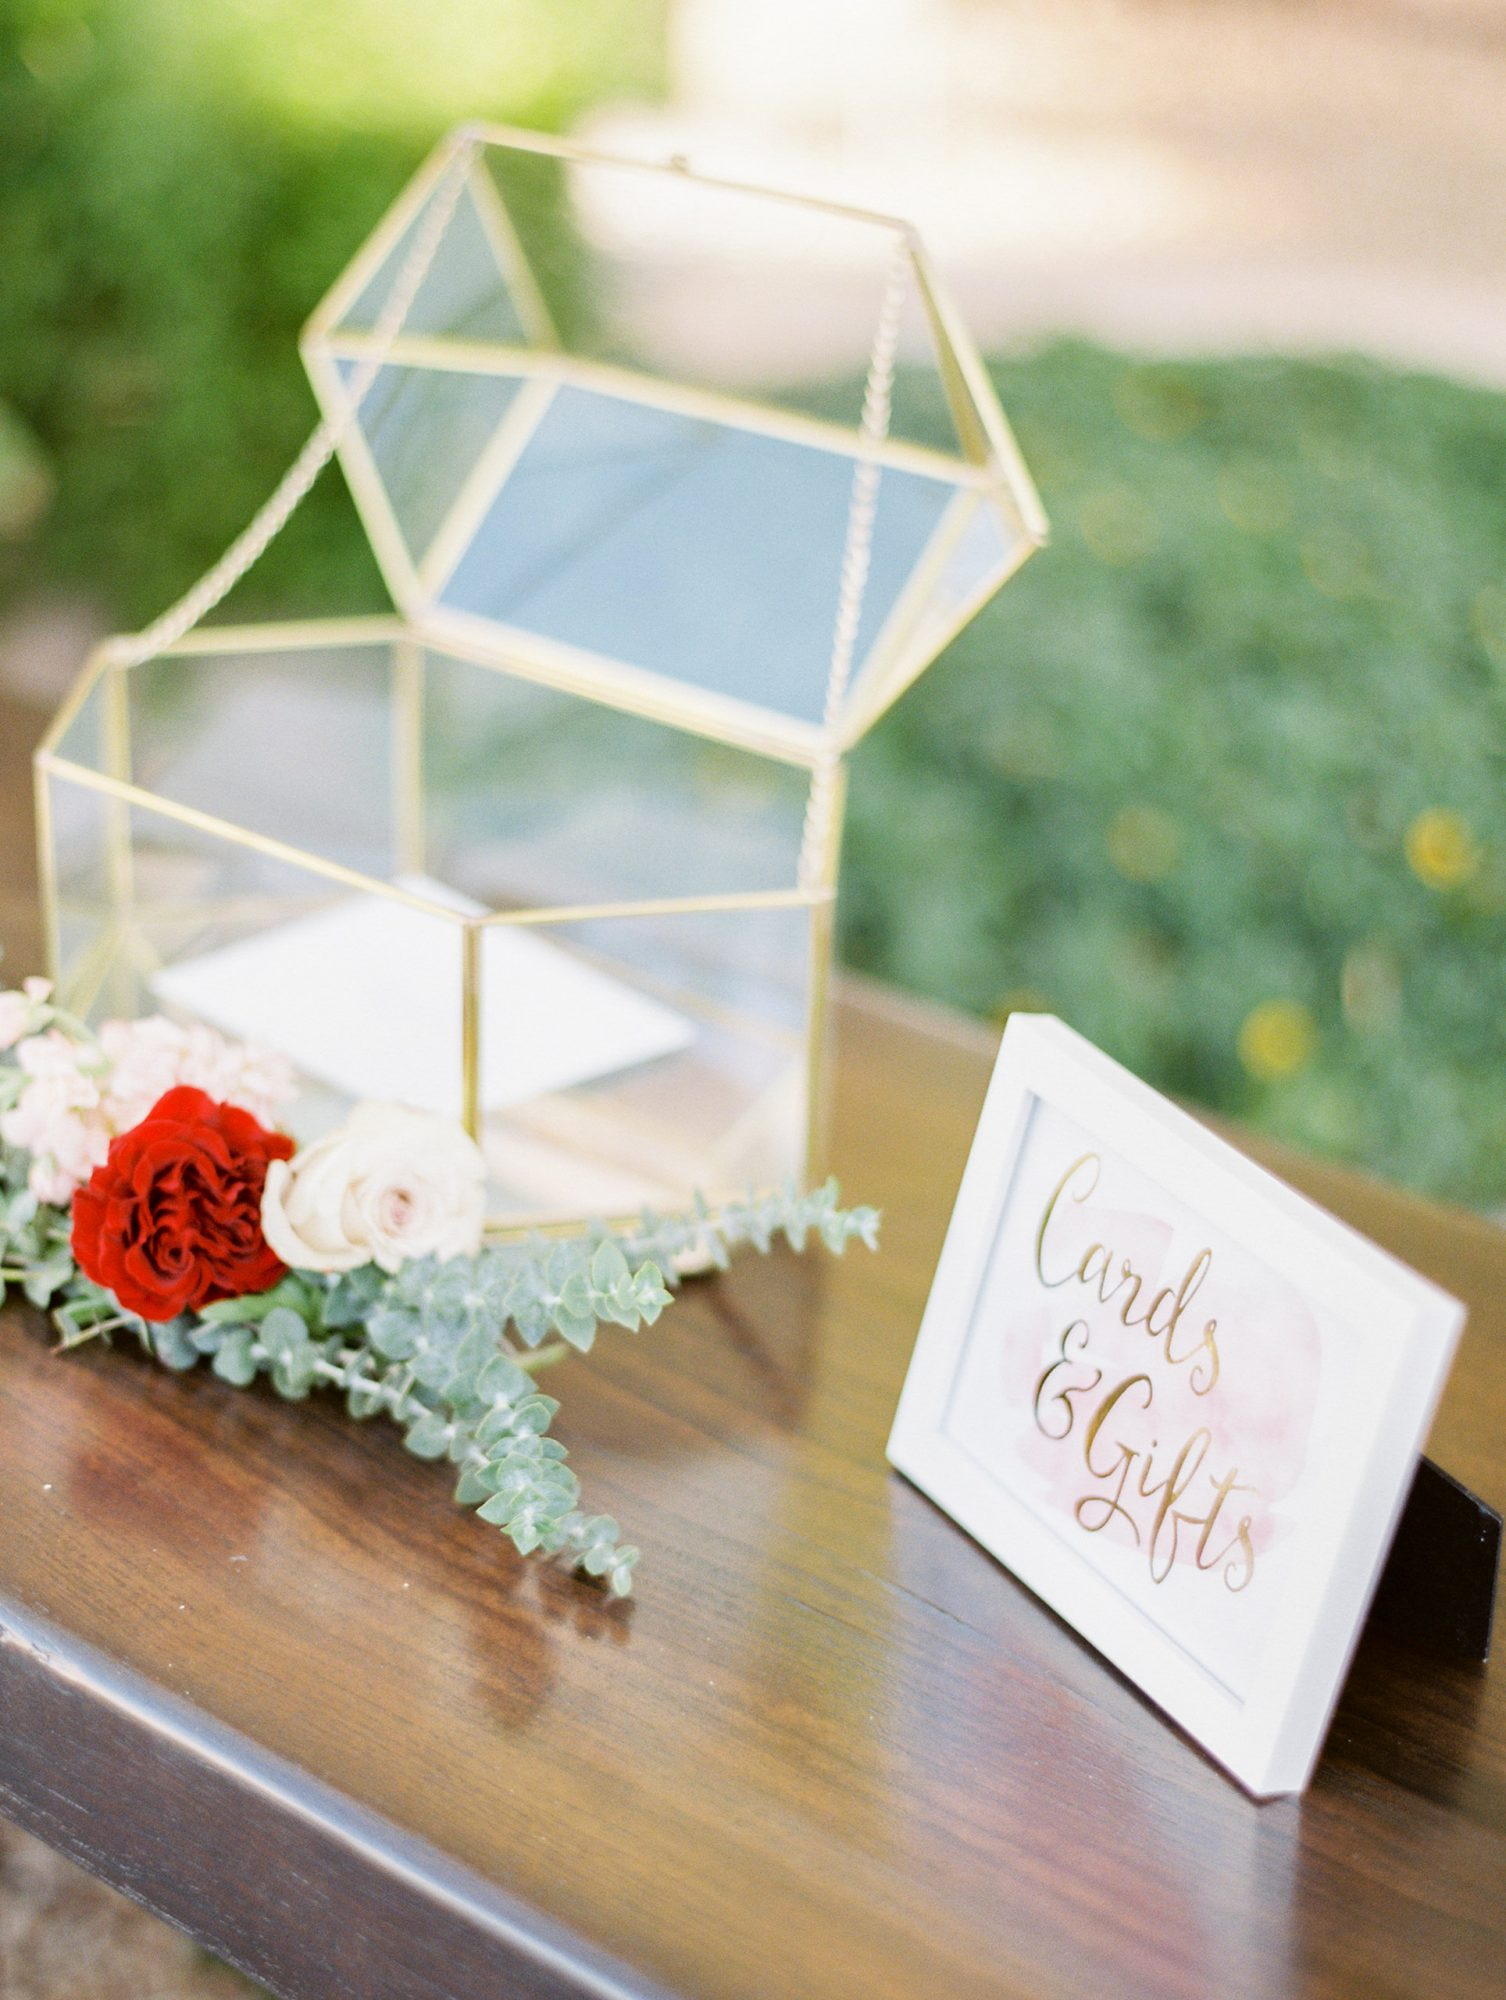 Cards and Gifts Table Rustic Wood Printed Wedding Sign